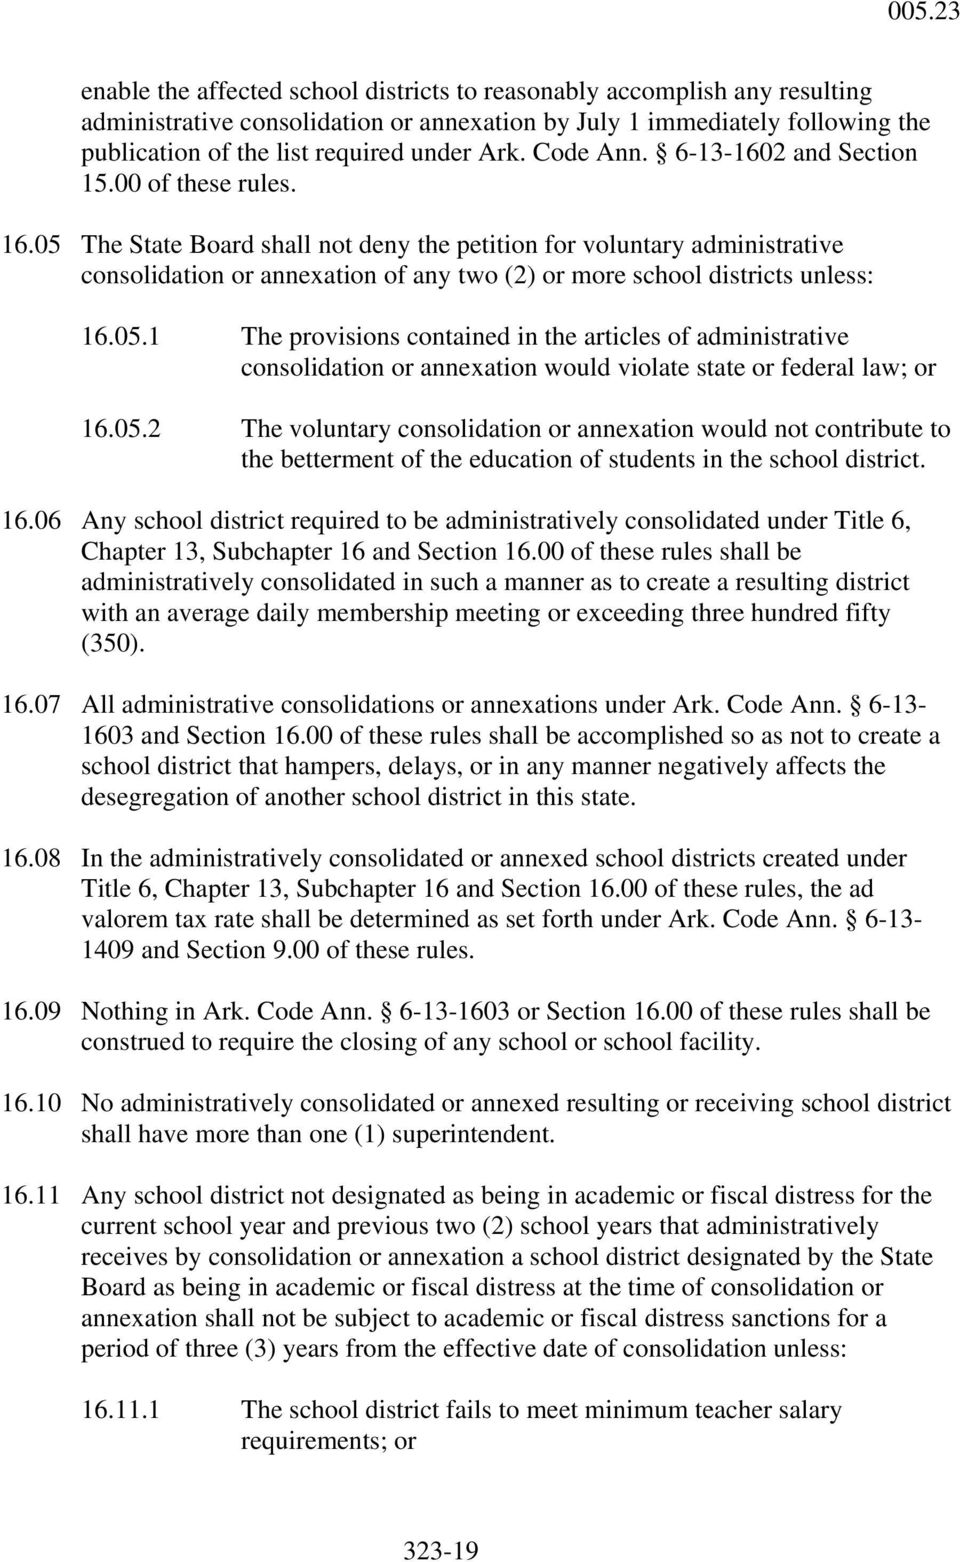 05 The State Board shall not deny the petition for voluntary administrative consolidation or annexation of any two (2) or more school districts unless: 16.05.1 The provisions contained in the articles of administrative consolidation or annexation would violate state or federal law; or 16.